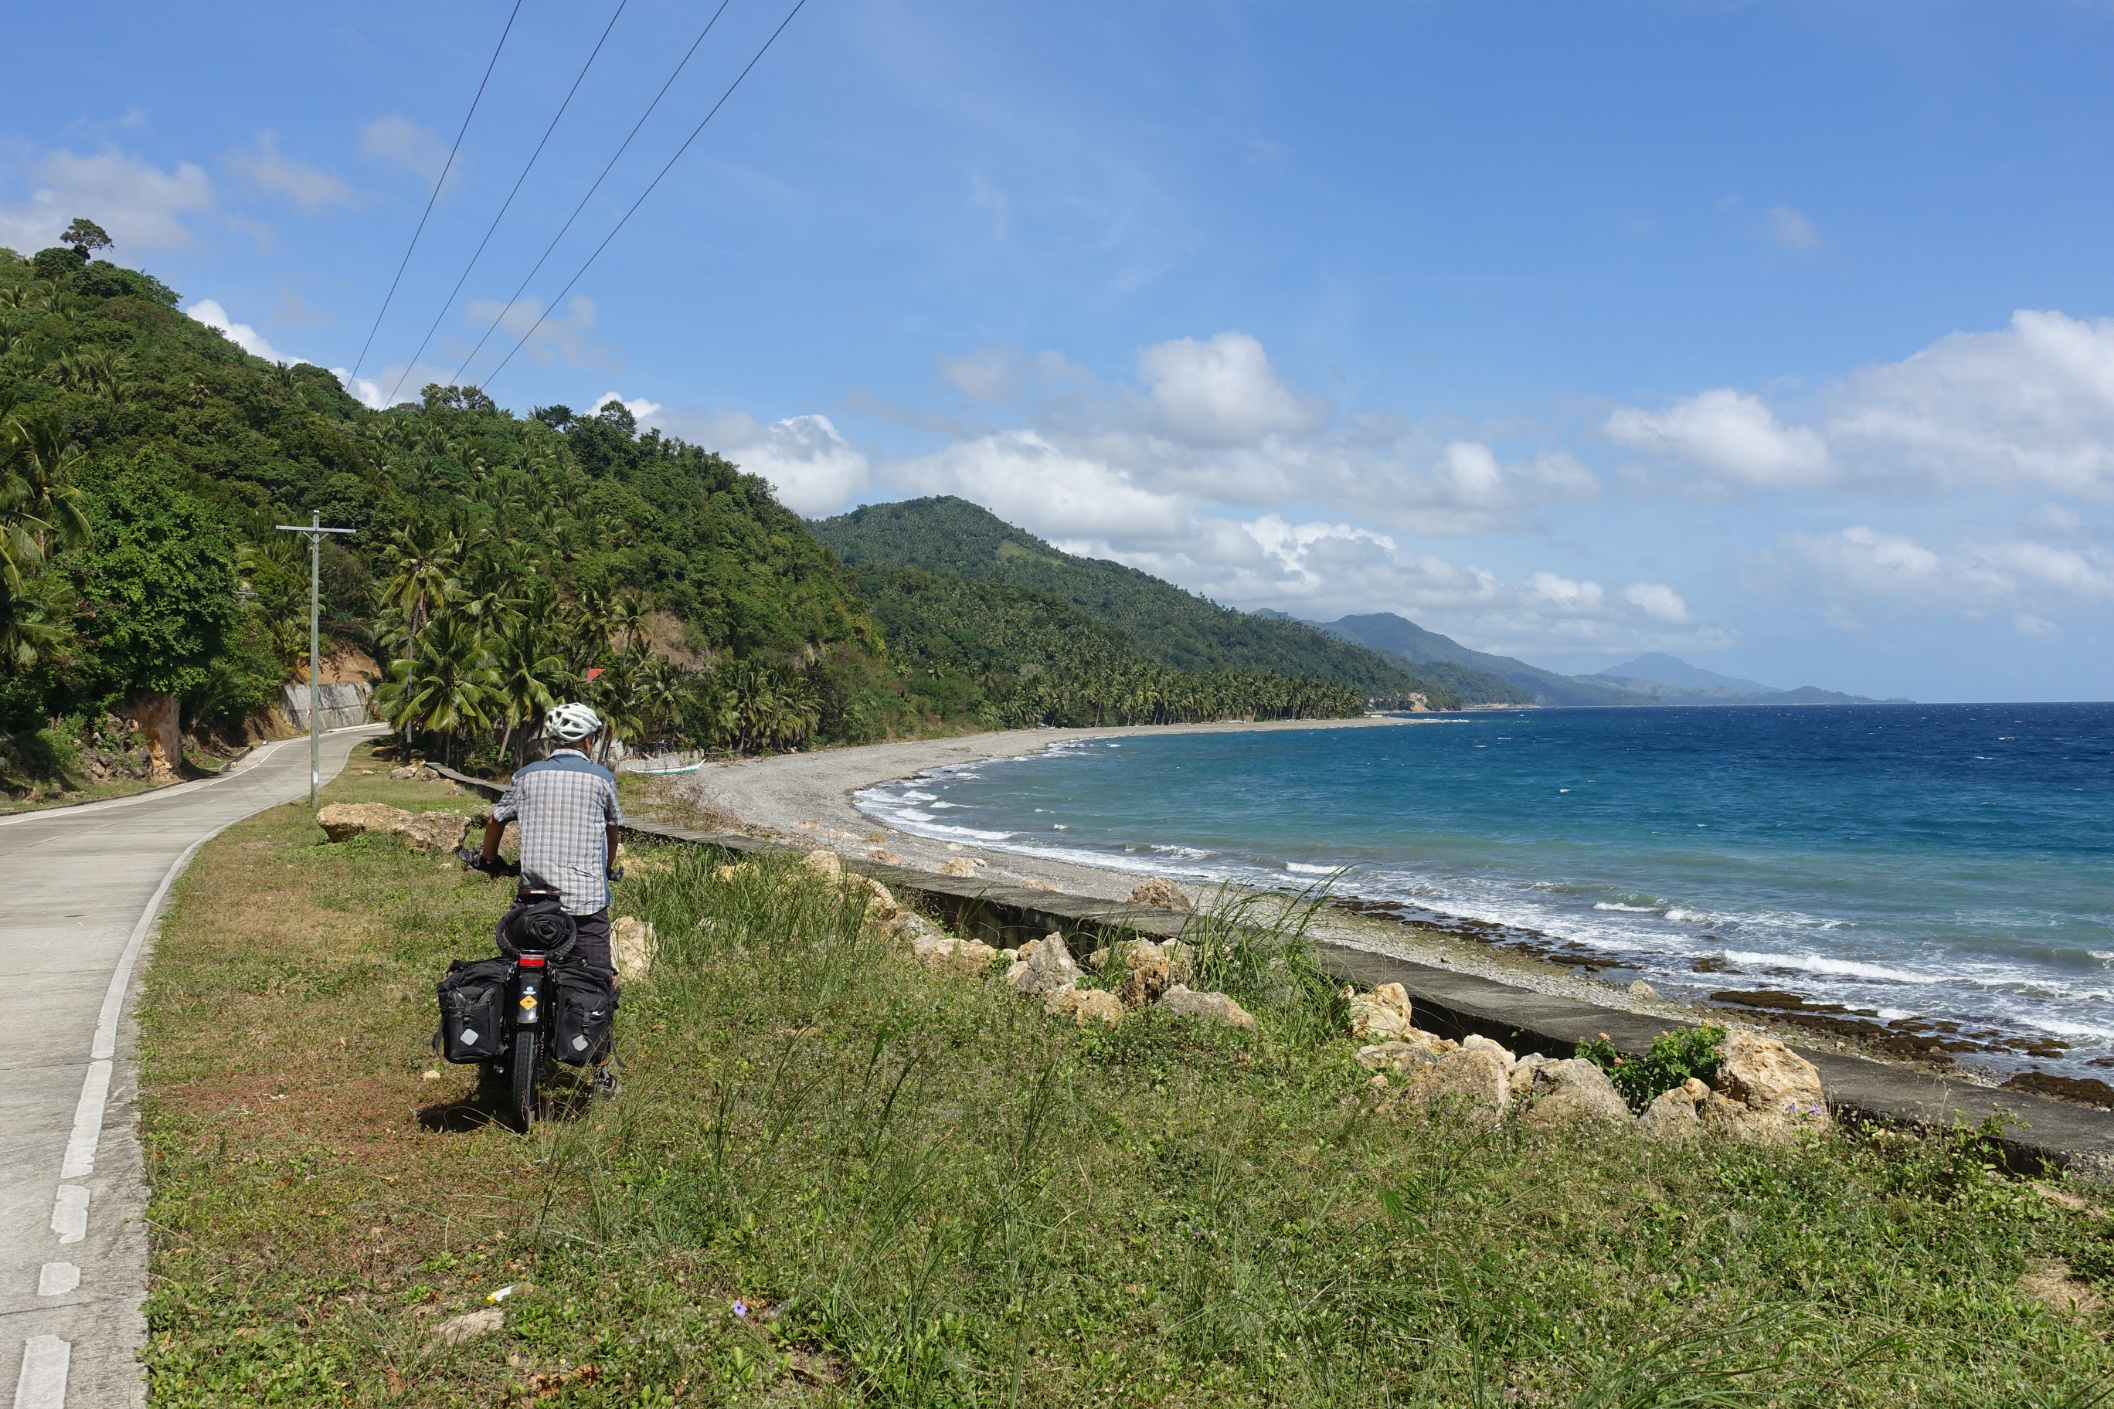 Another long coast road; this one on Tablas Island